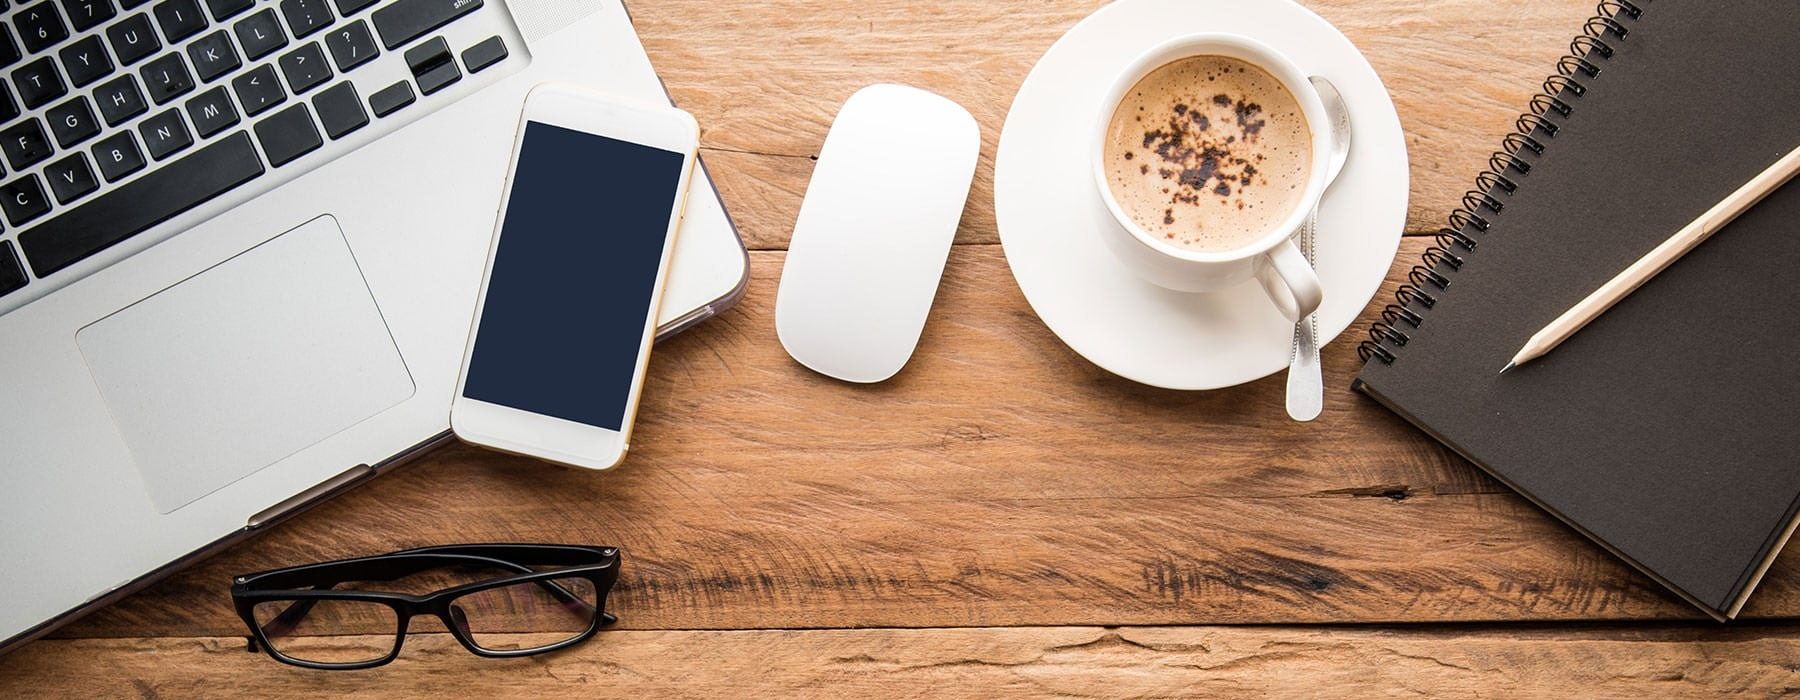 lifestyle image of communication devices, some reading glasses, and a coffee